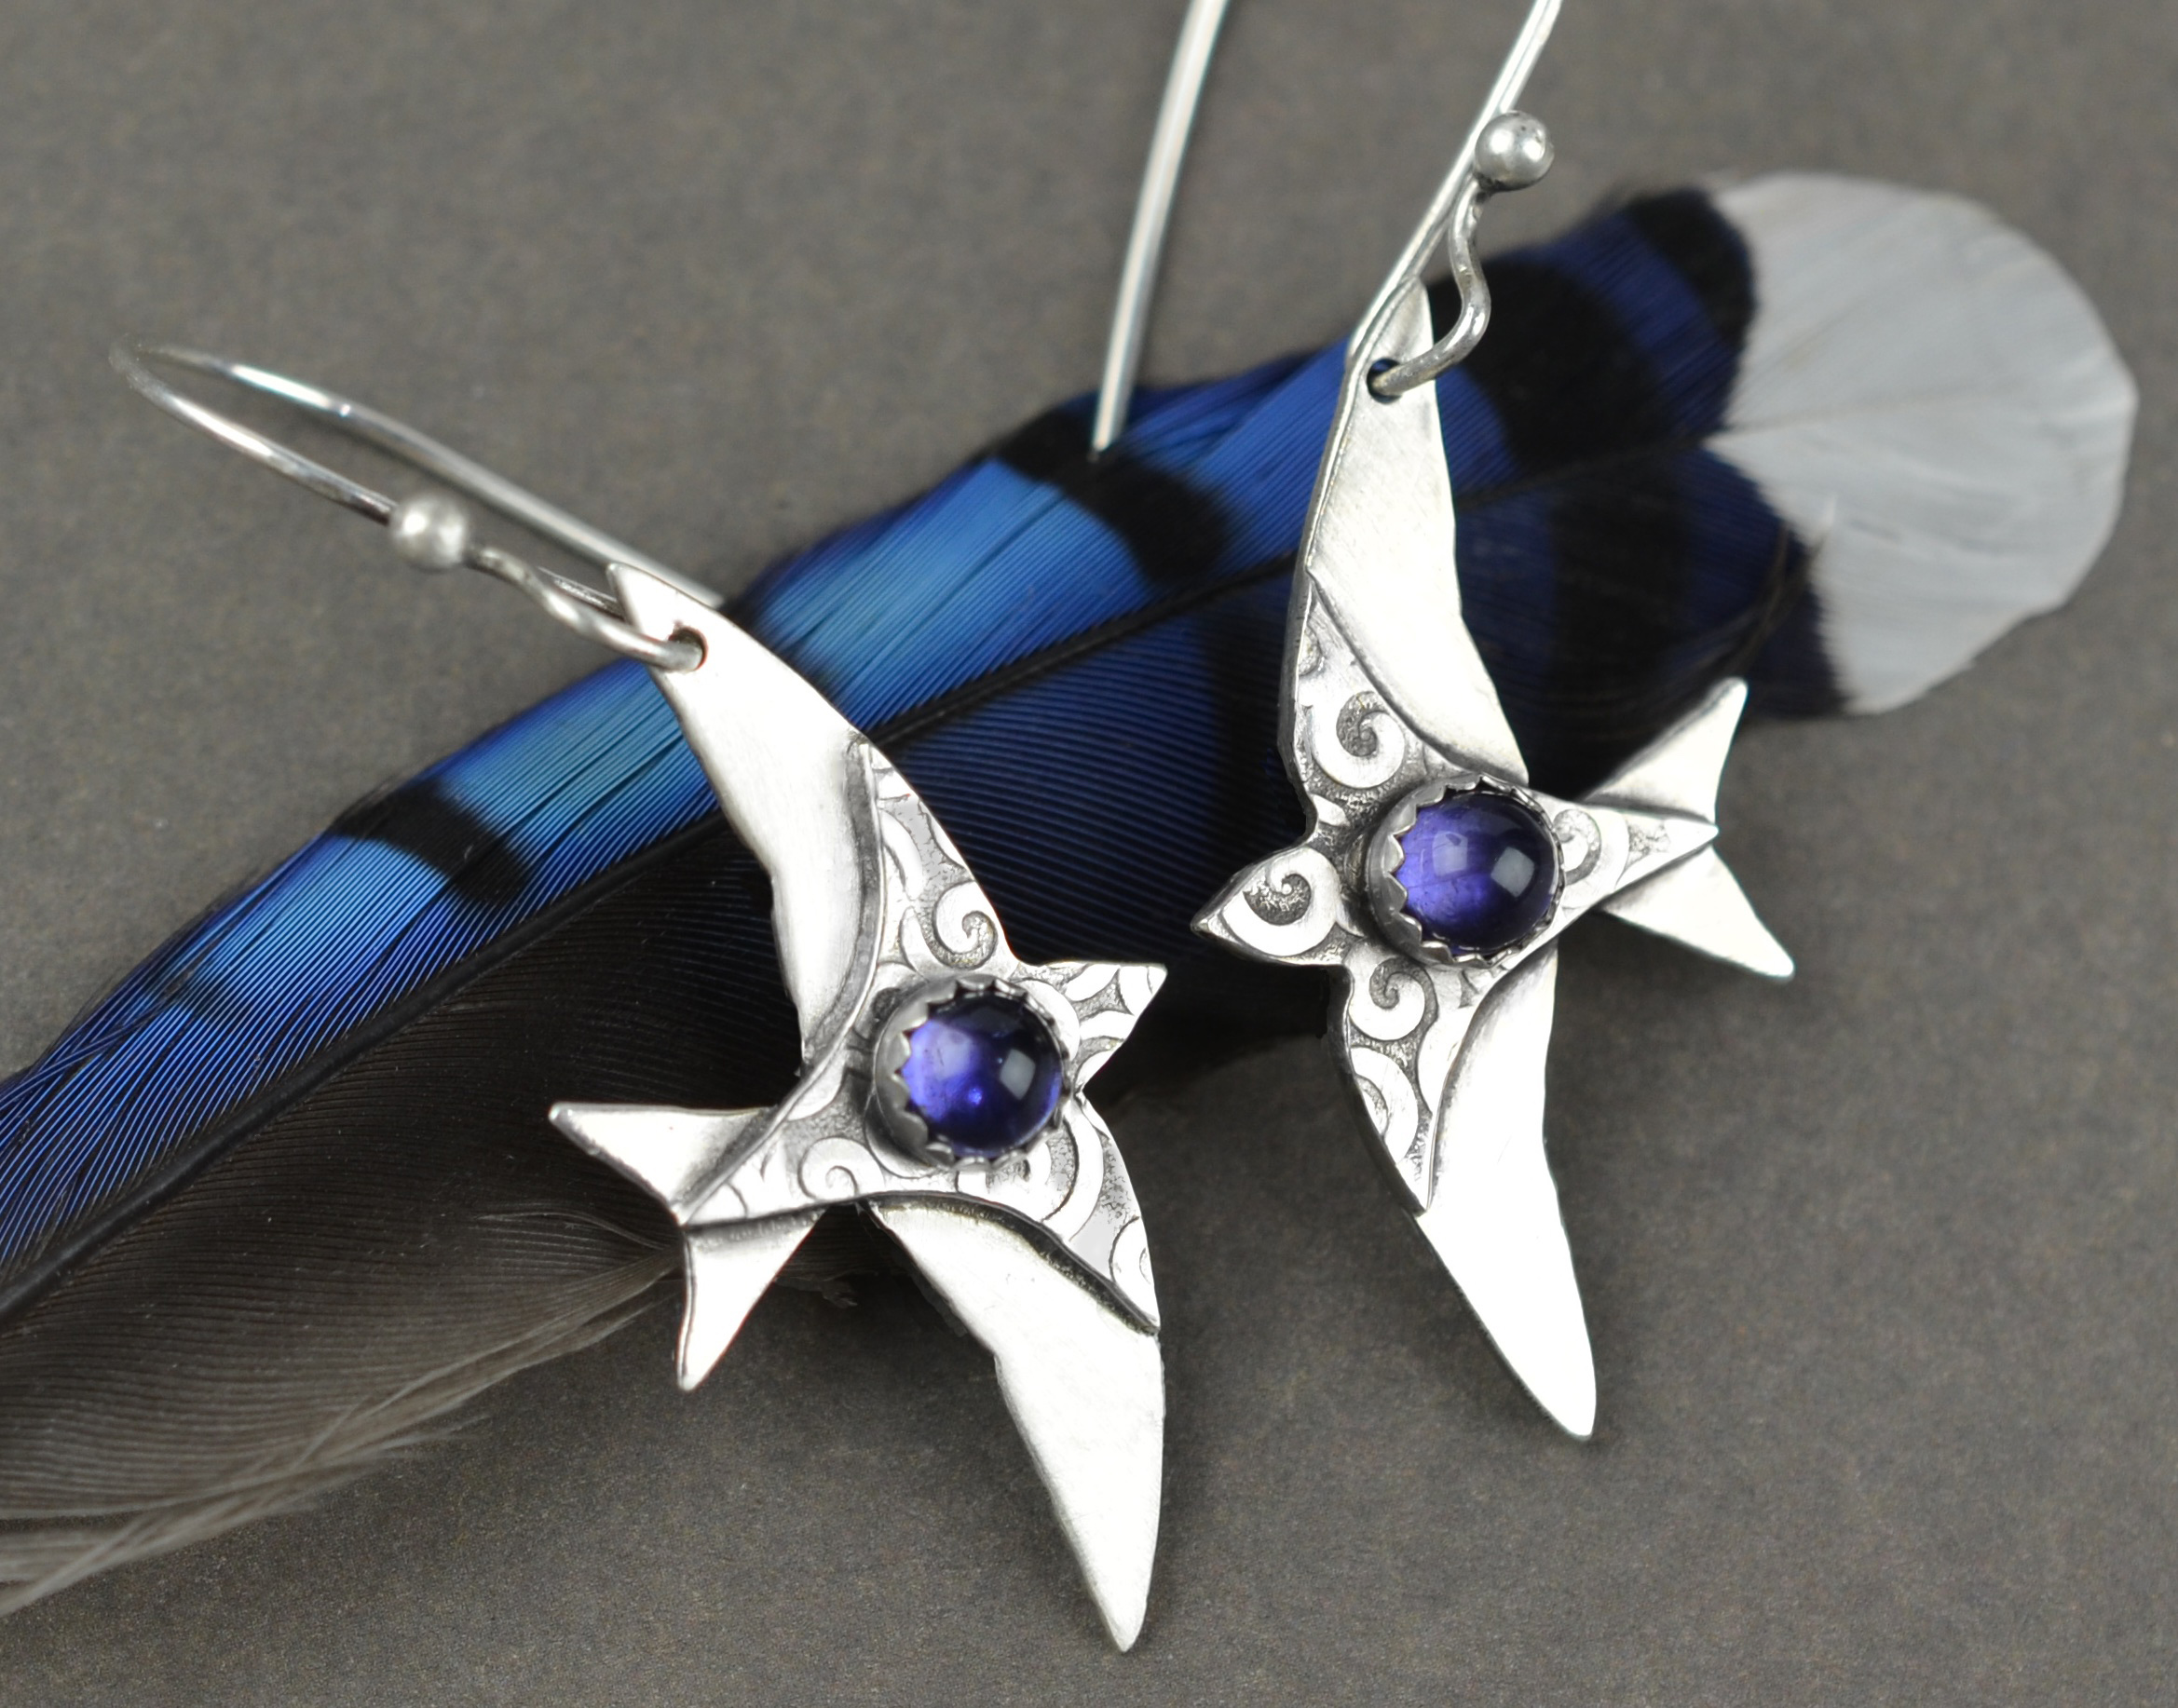 Purple Martin Iolite Earrings